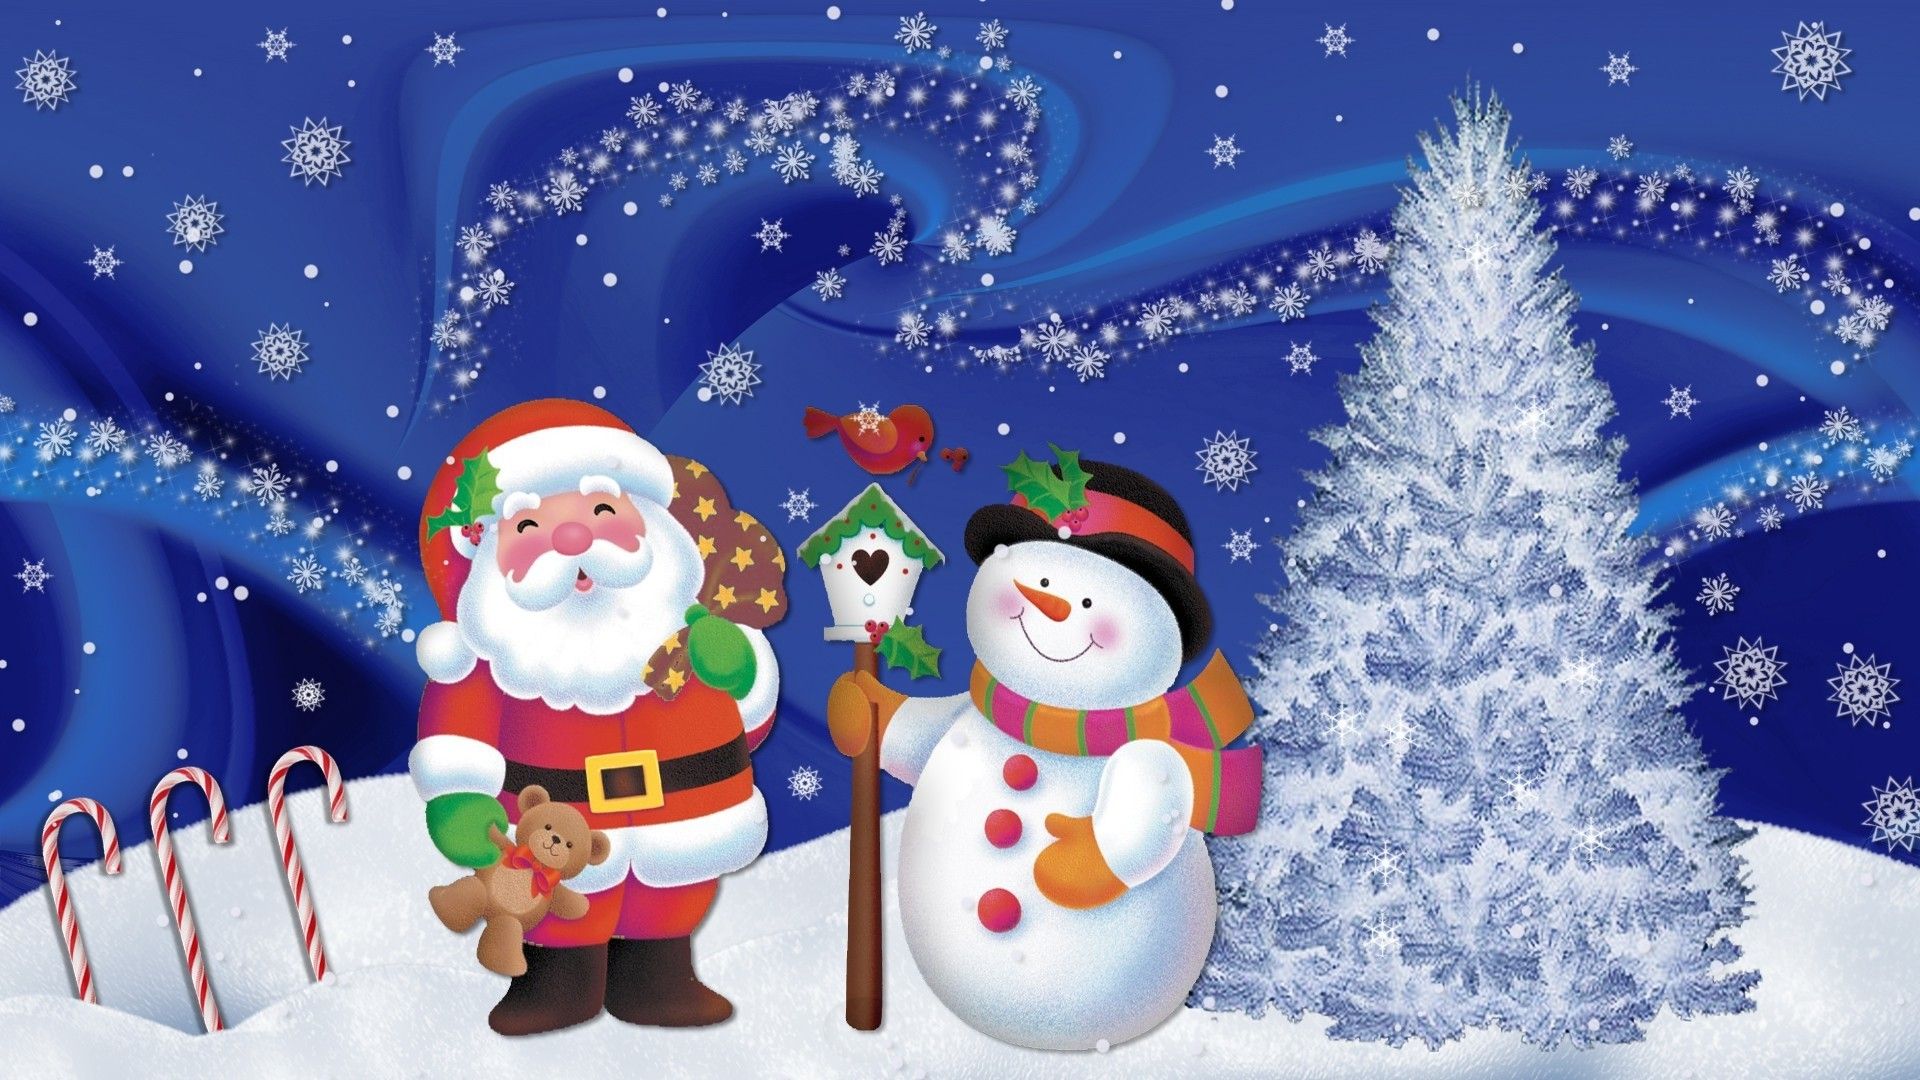 Christmas Wallpapers Animated Free | Hd Wallpapers Download